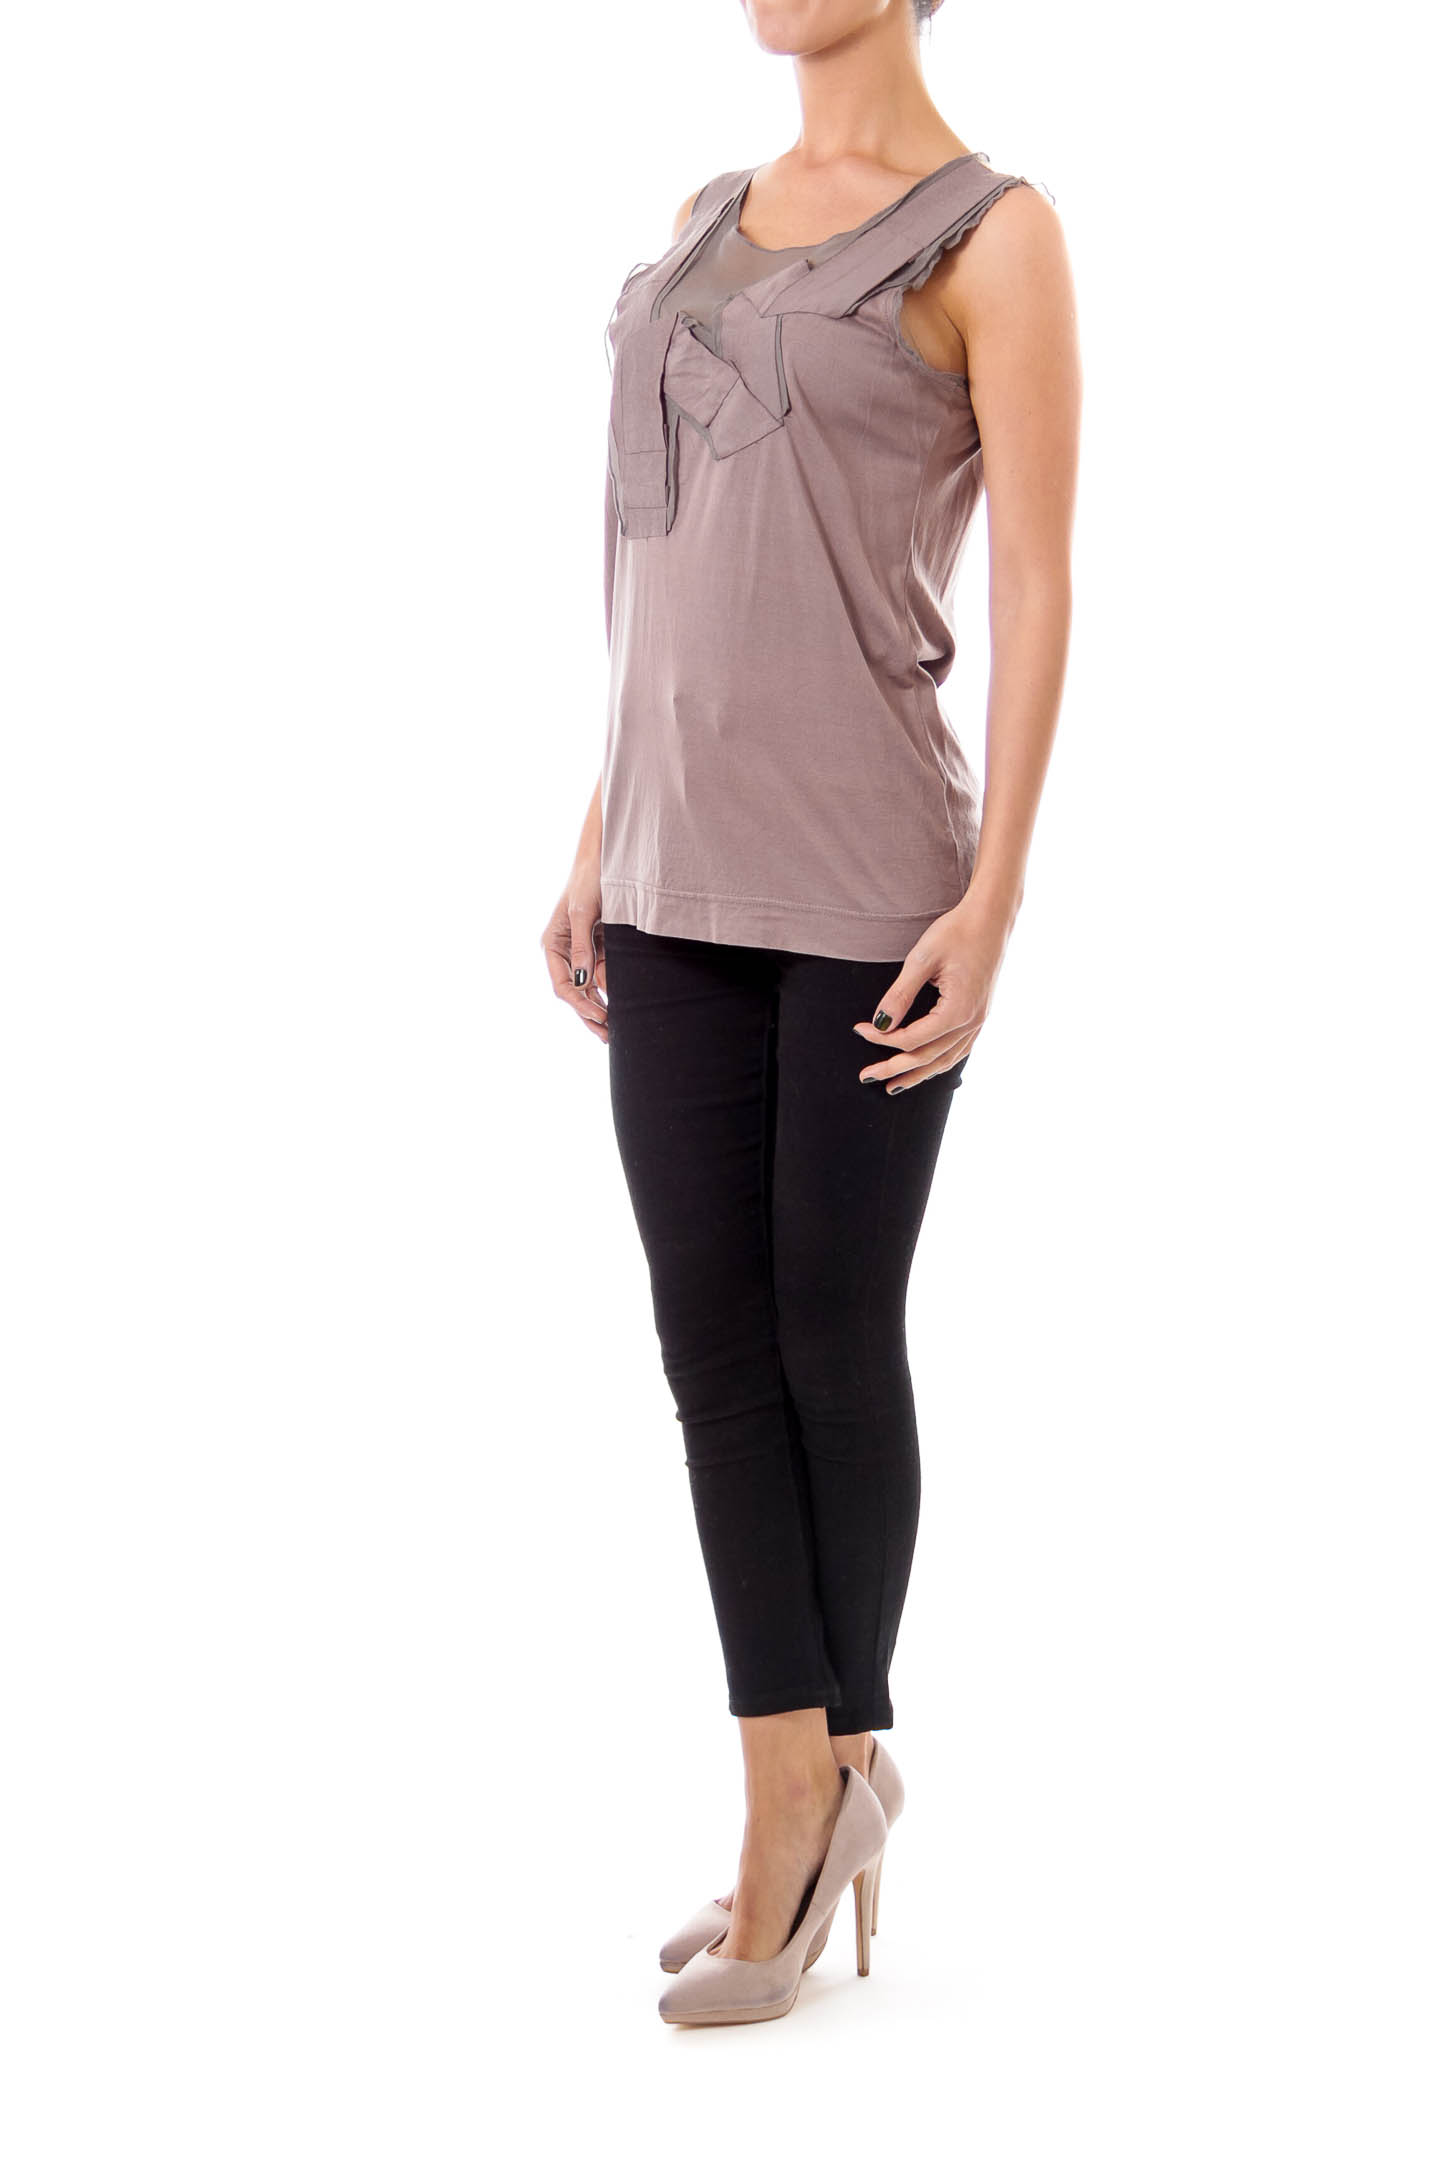 Brown and Taupe Layered Top